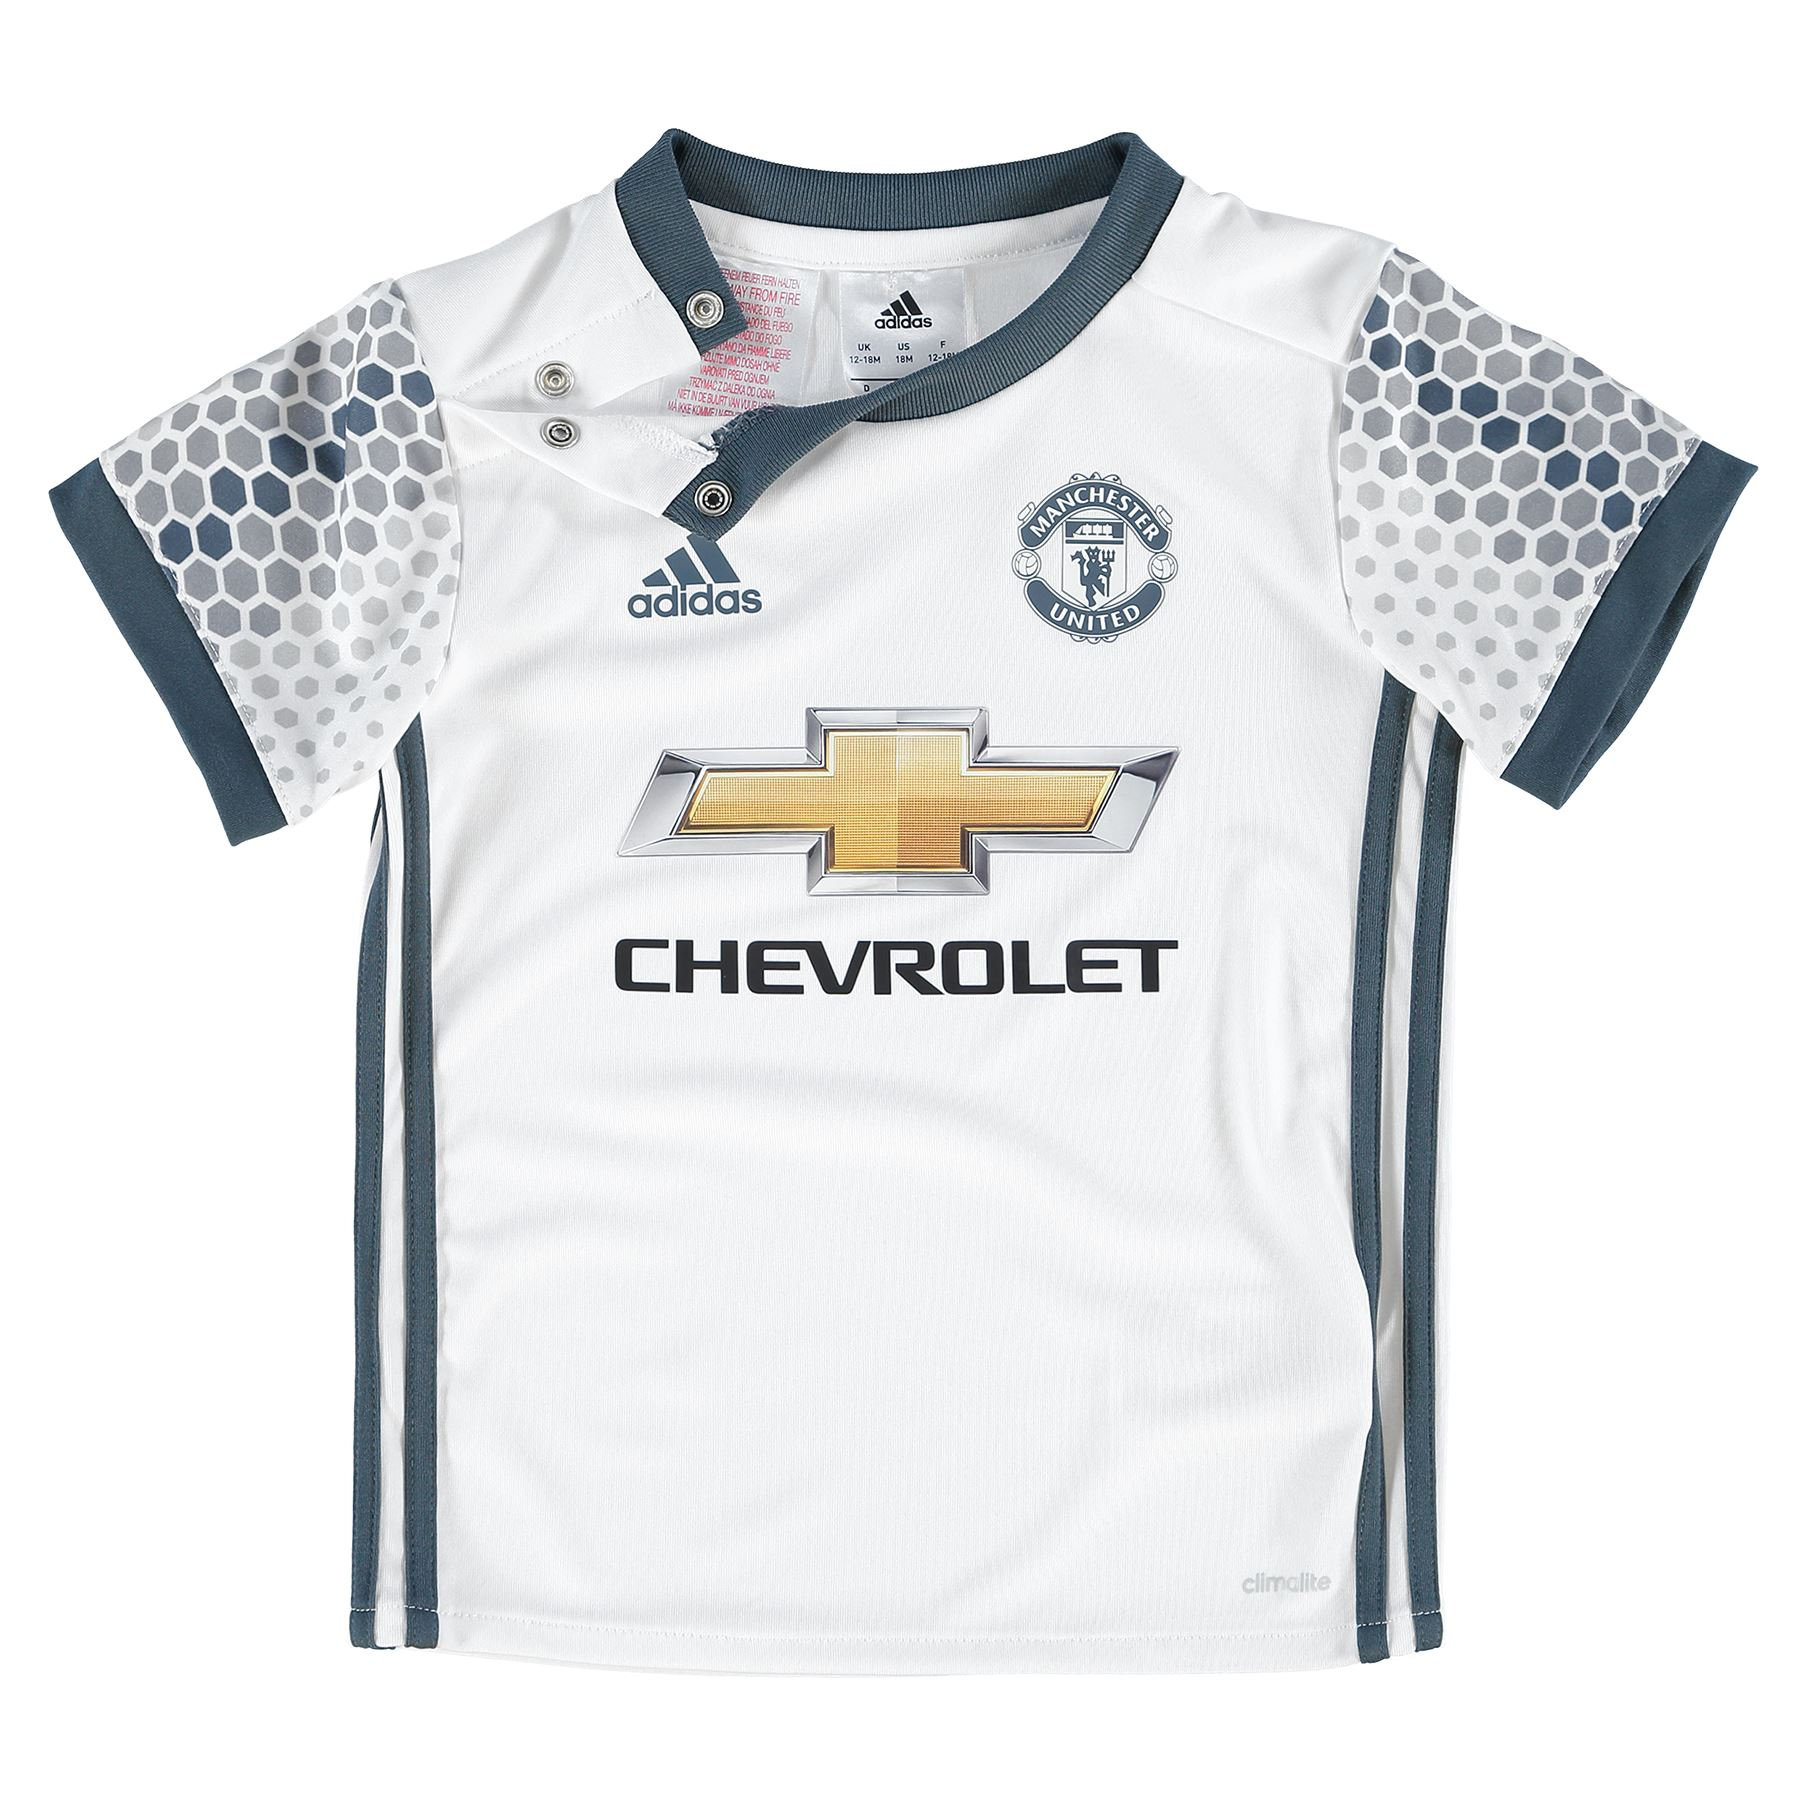 adidas enfants football manchester united ensemble b b 3 me maillot short 16 17 ebay. Black Bedroom Furniture Sets. Home Design Ideas